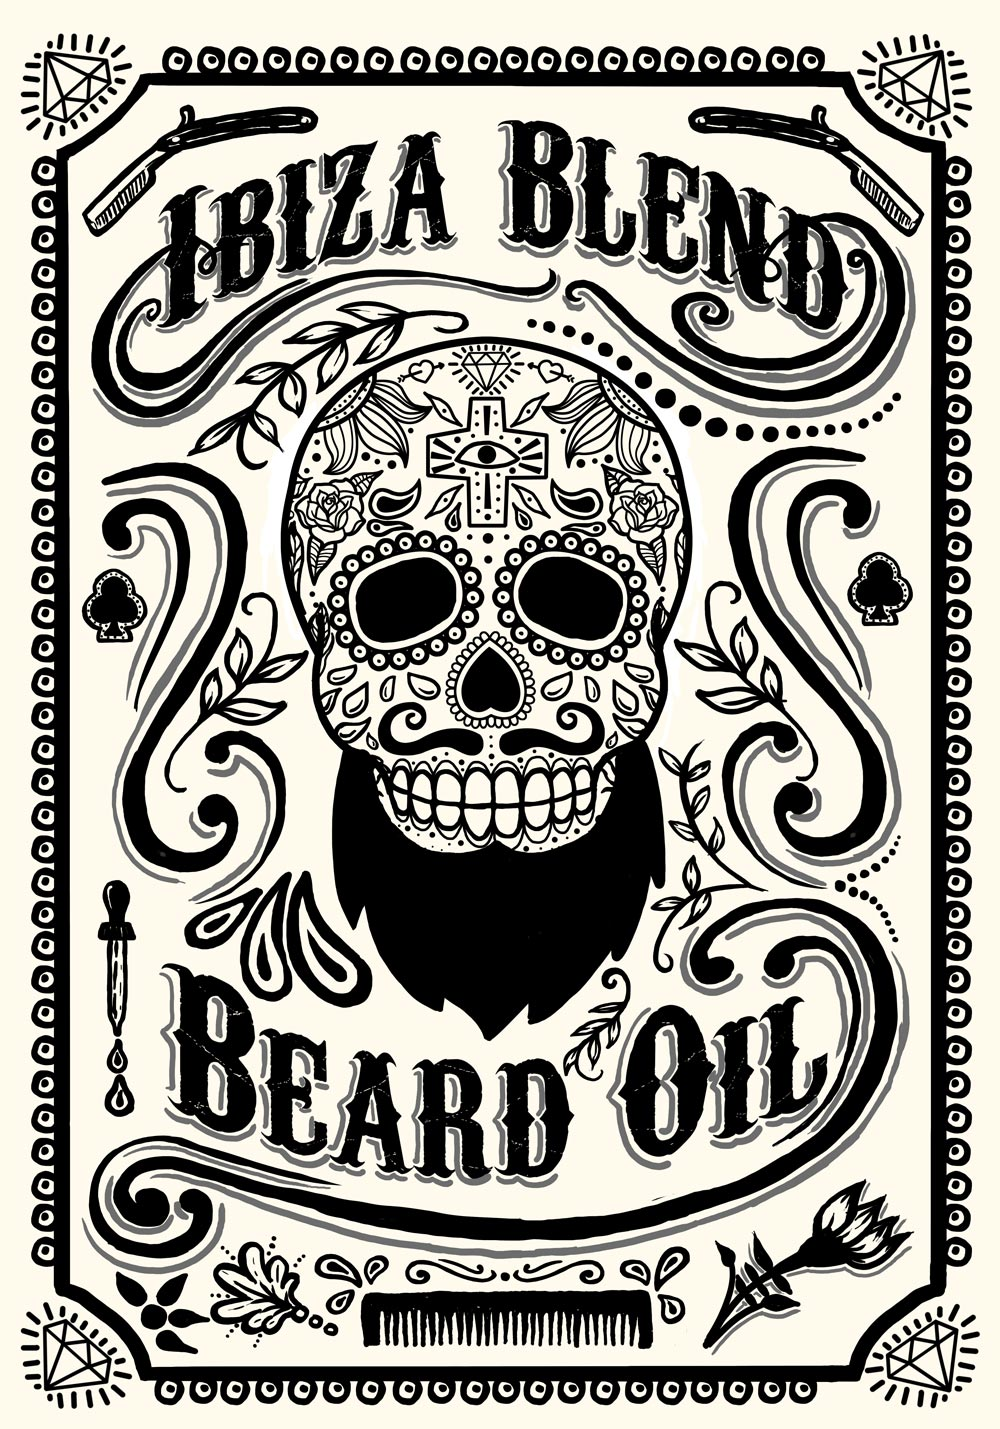 Ibiza Blend Beard Oil Label design | Oscar Postigo